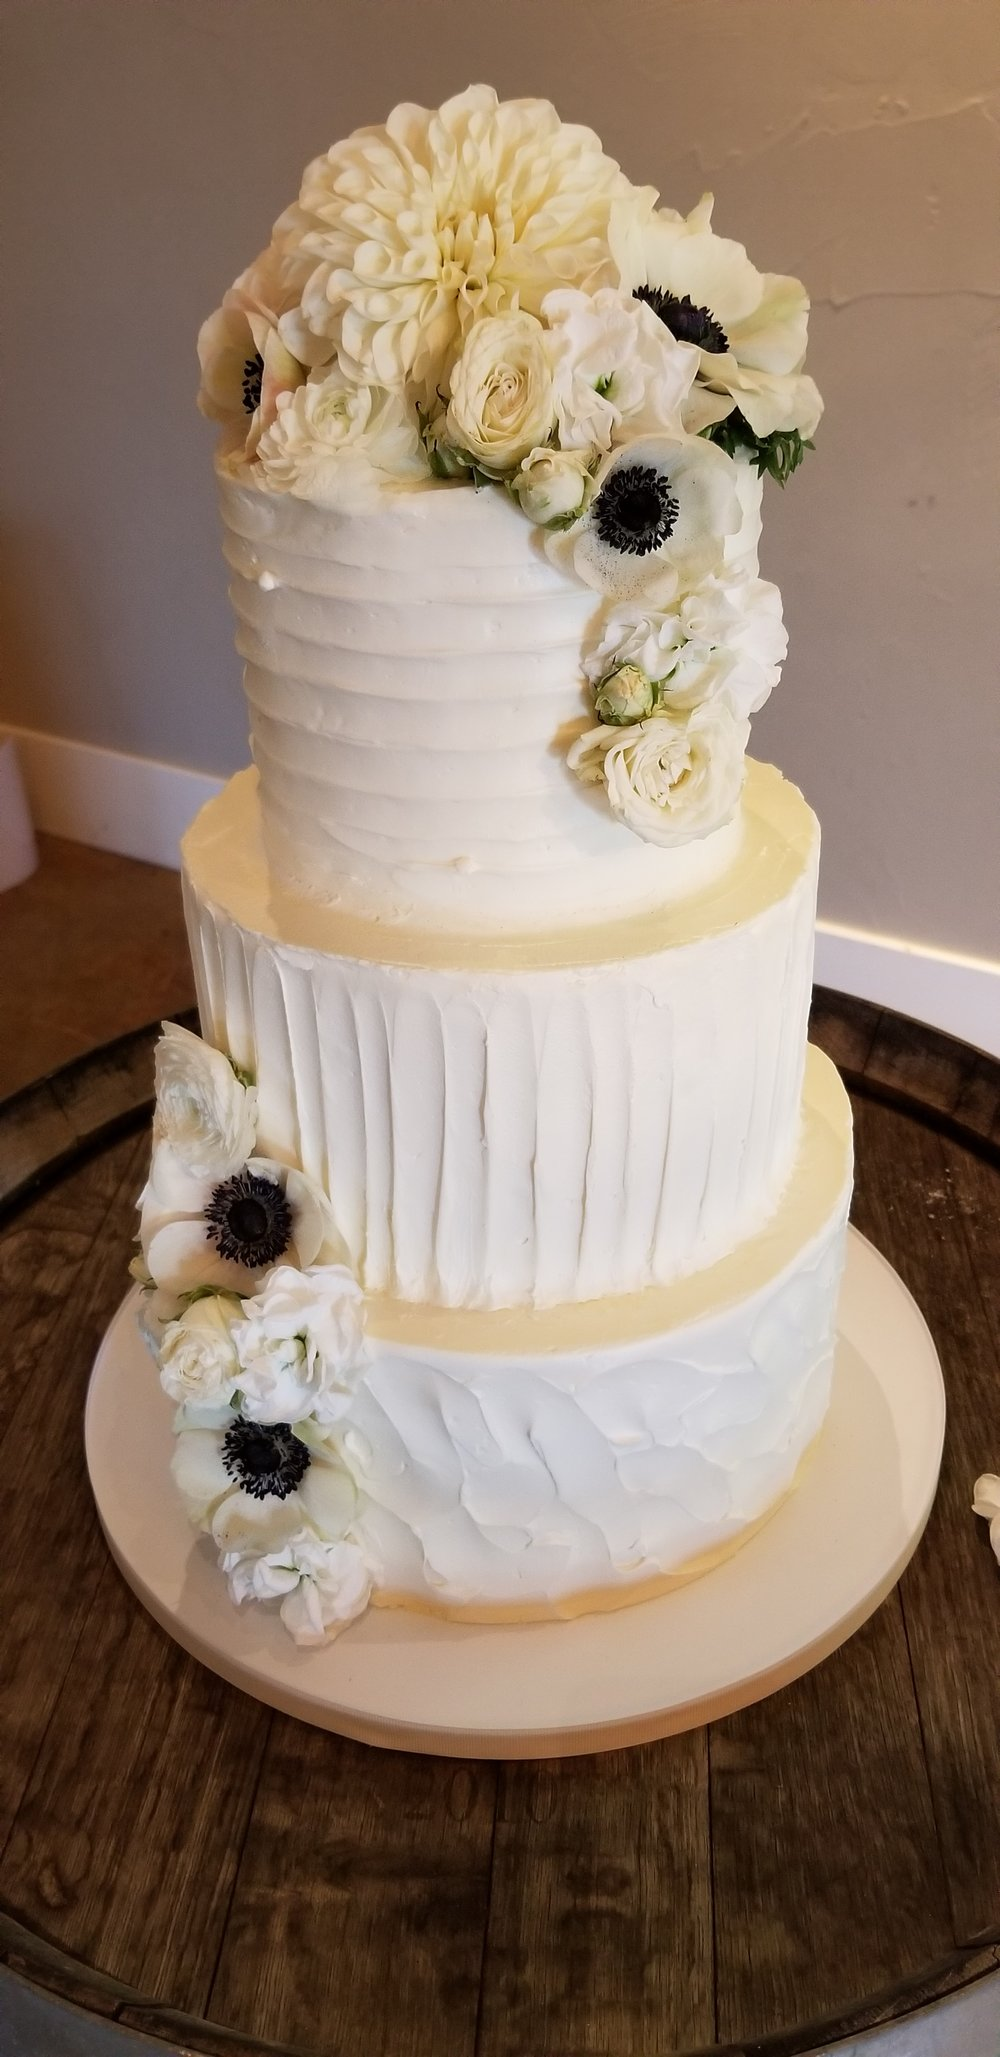 Wedding cake flowers, white dahlia and anemone.